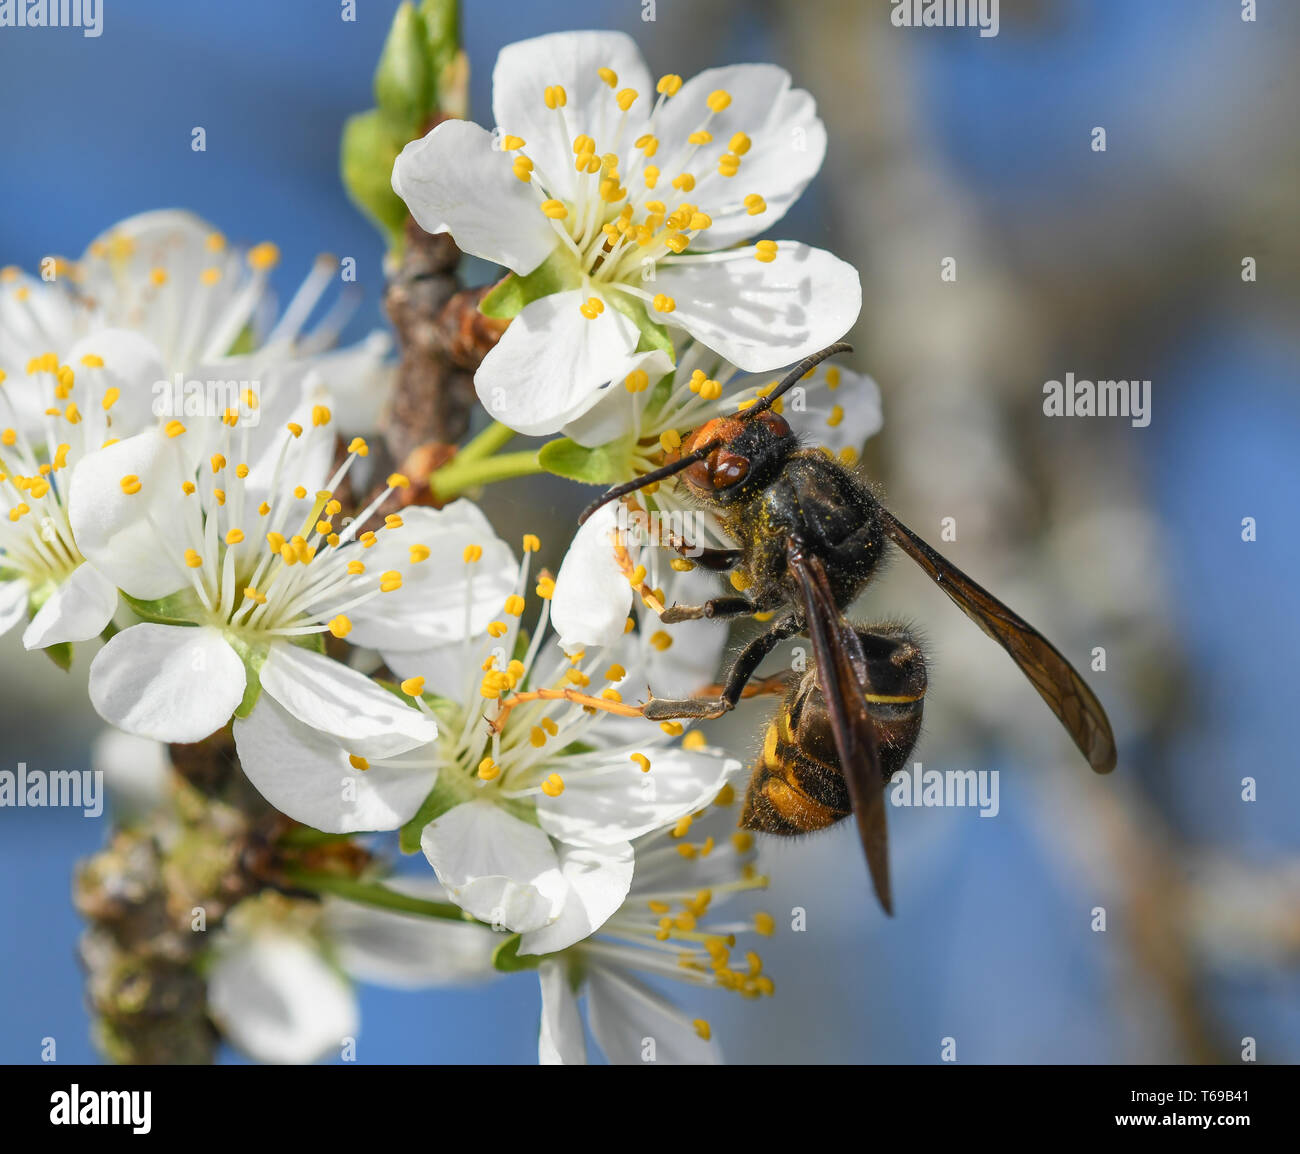 Asian wasp feeding on the flowers of a plum - Stock Image